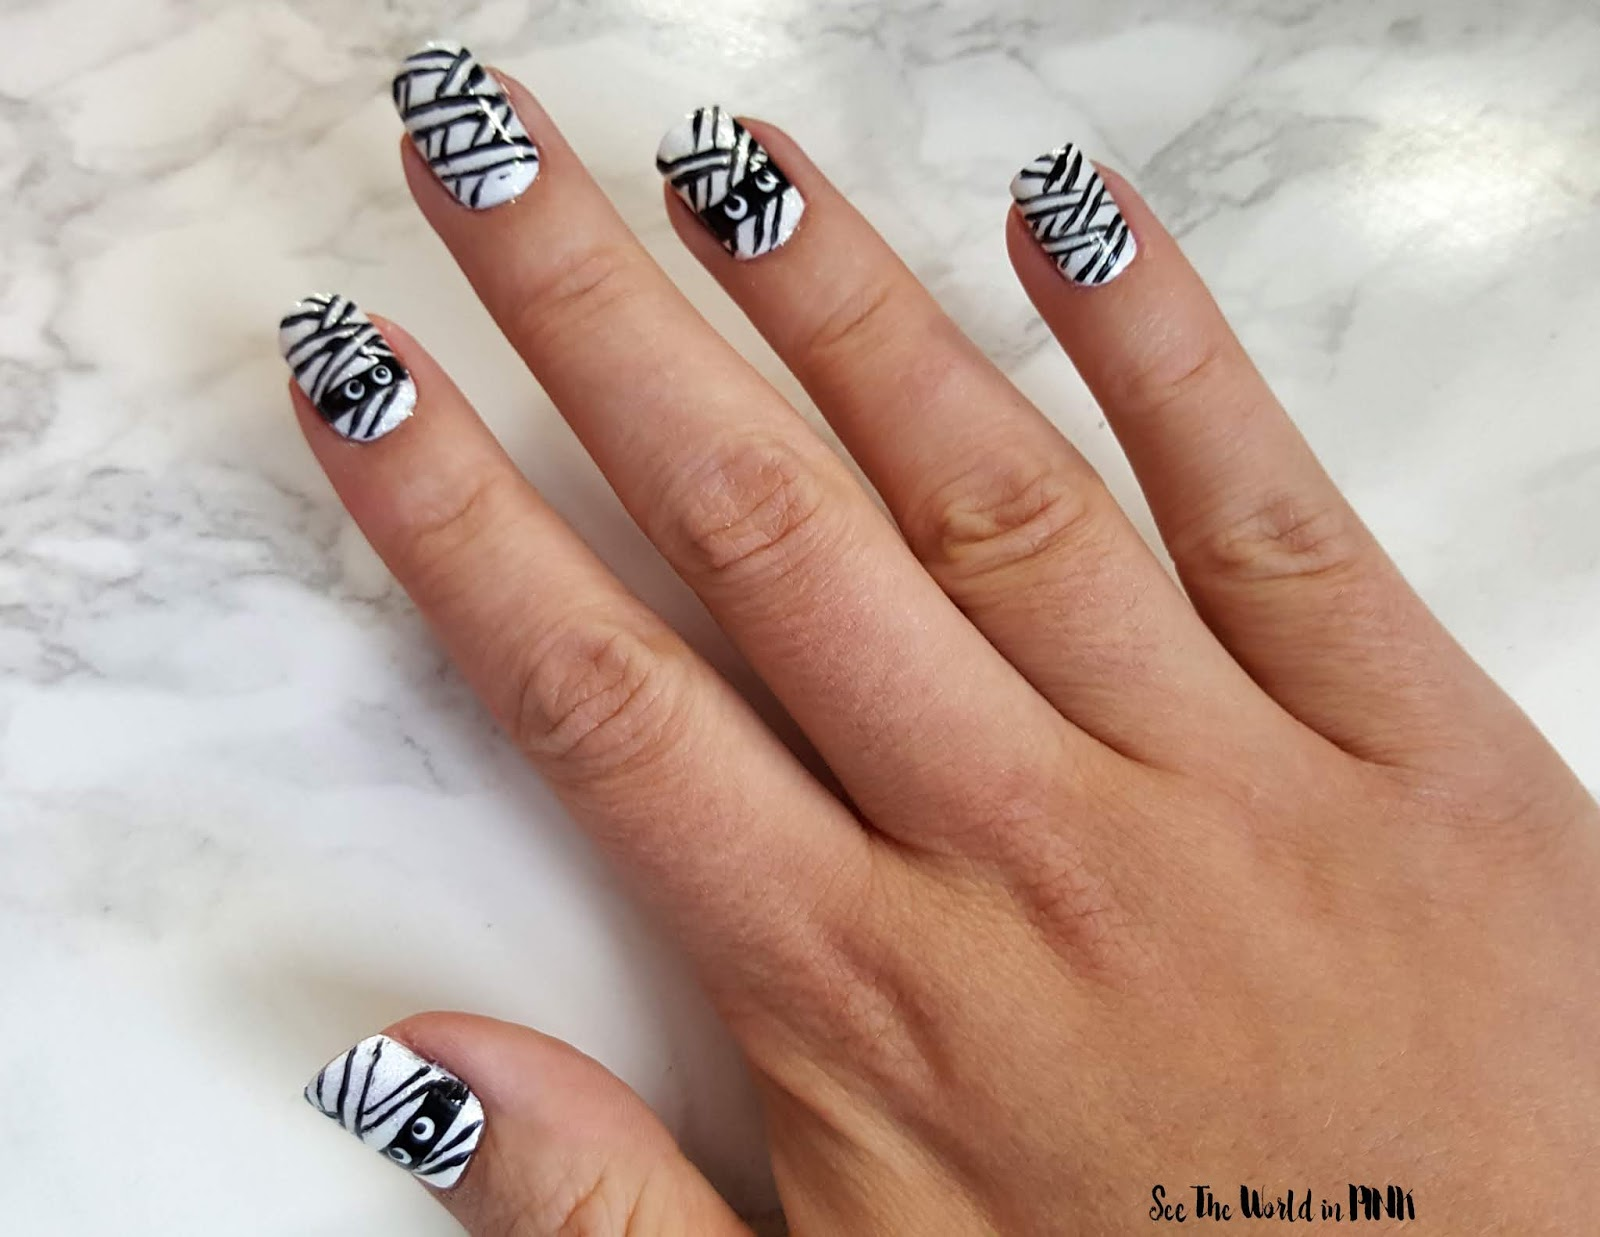 Manicure Monday - Halloween Monster Mummy Nails!